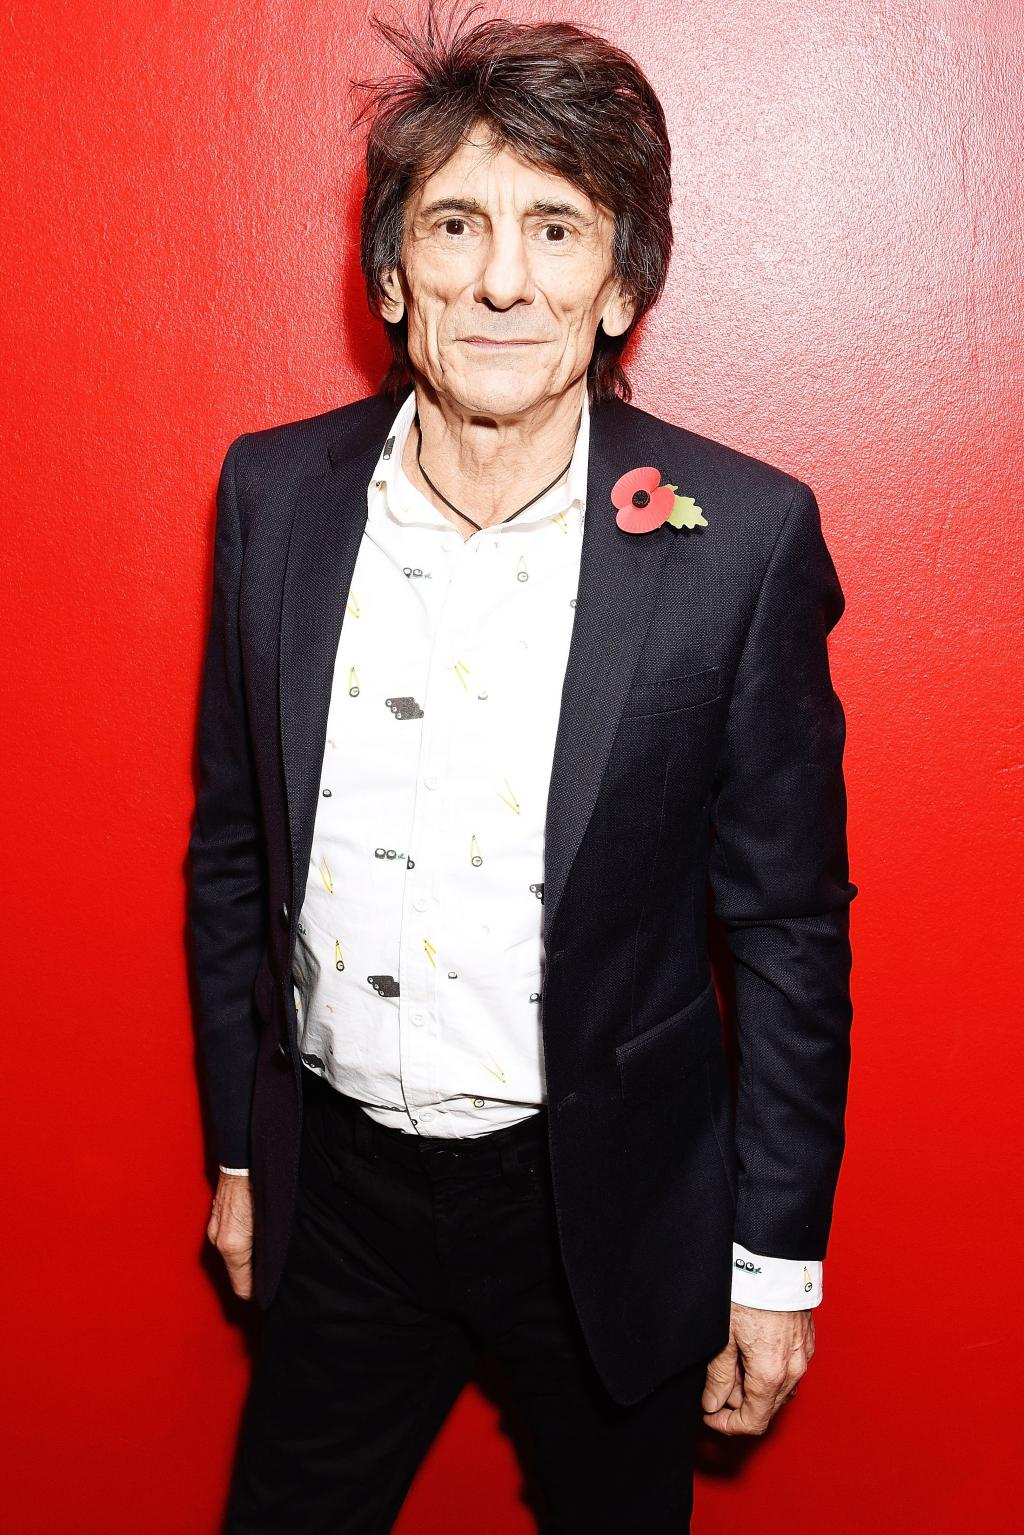 The Rolling Stones' Ronnie Wood Reveals He Had a 'Touch' of Lung Cancer: 'It Could Have Been Curtains'